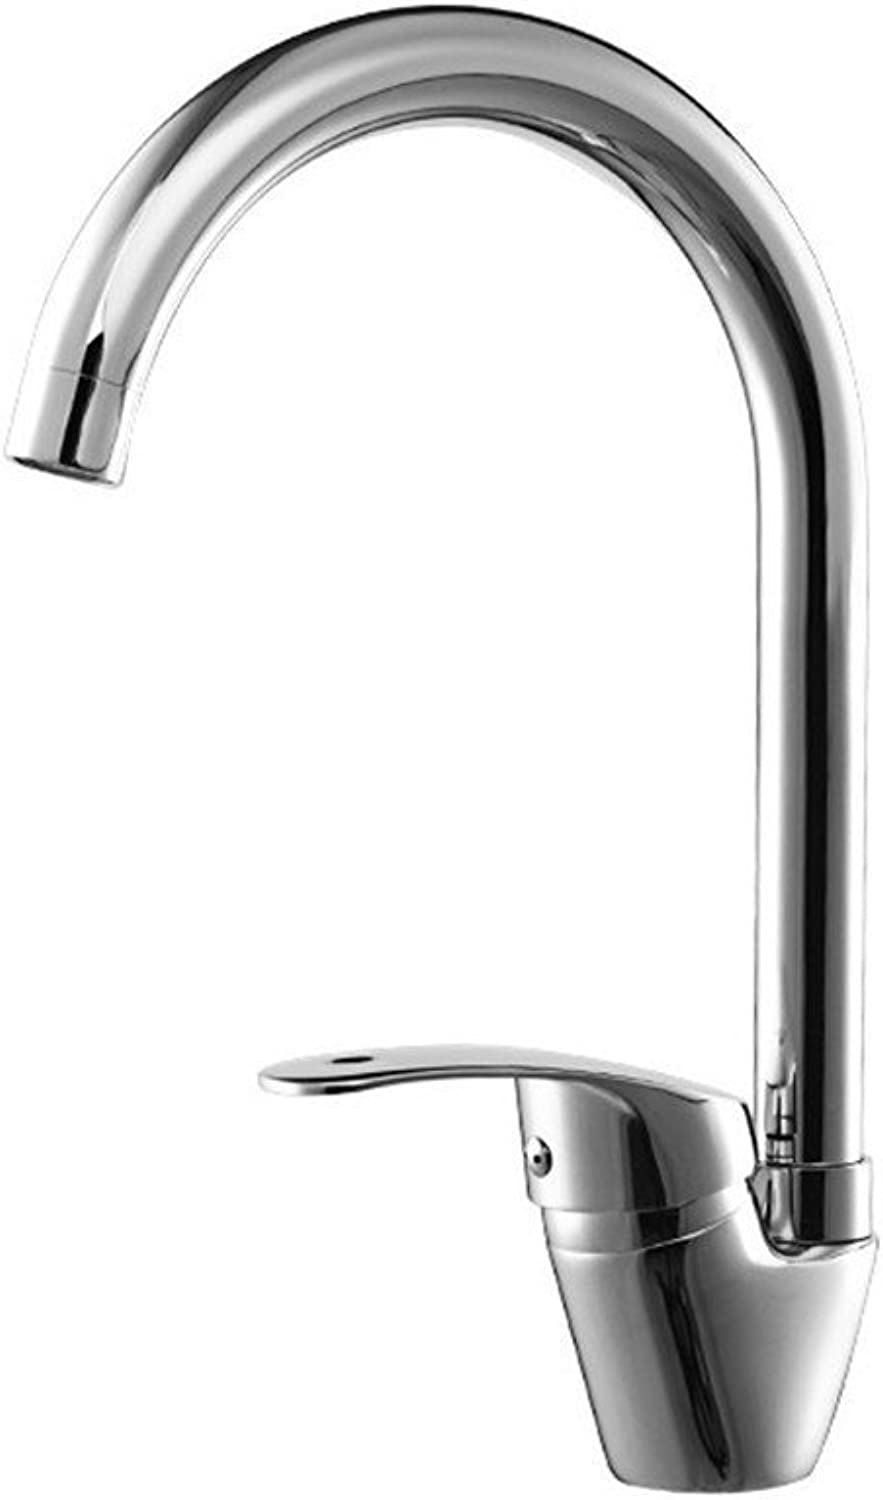 Decorry All Copper Kitchen Faucet Faucet Kitchen Wash Water Faucet